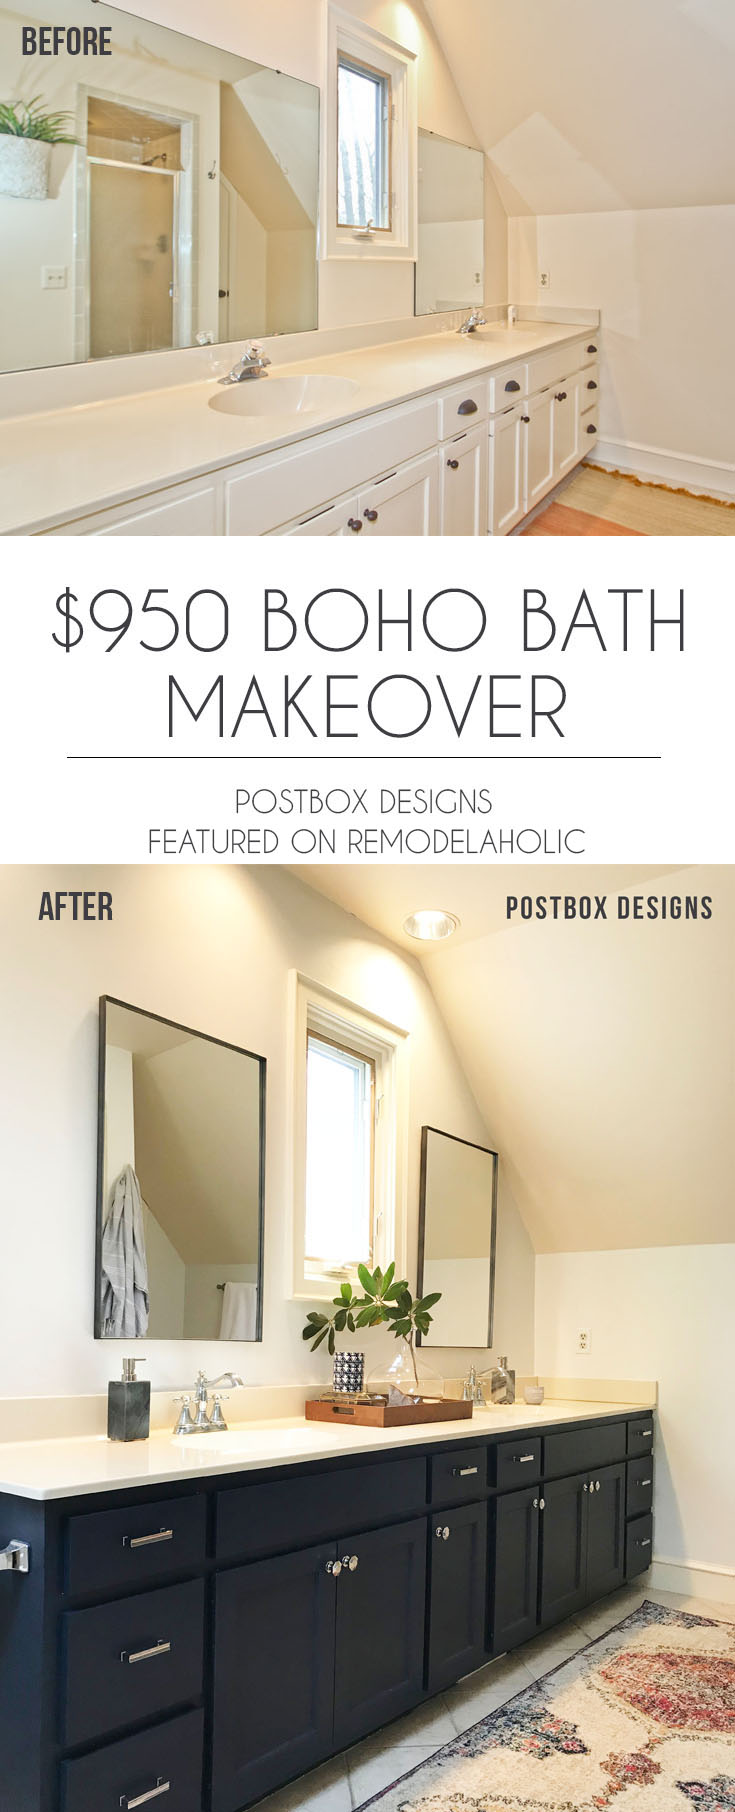 Remodelaholic | $950 Budget Bathroom Makeover: How I Updated My ...